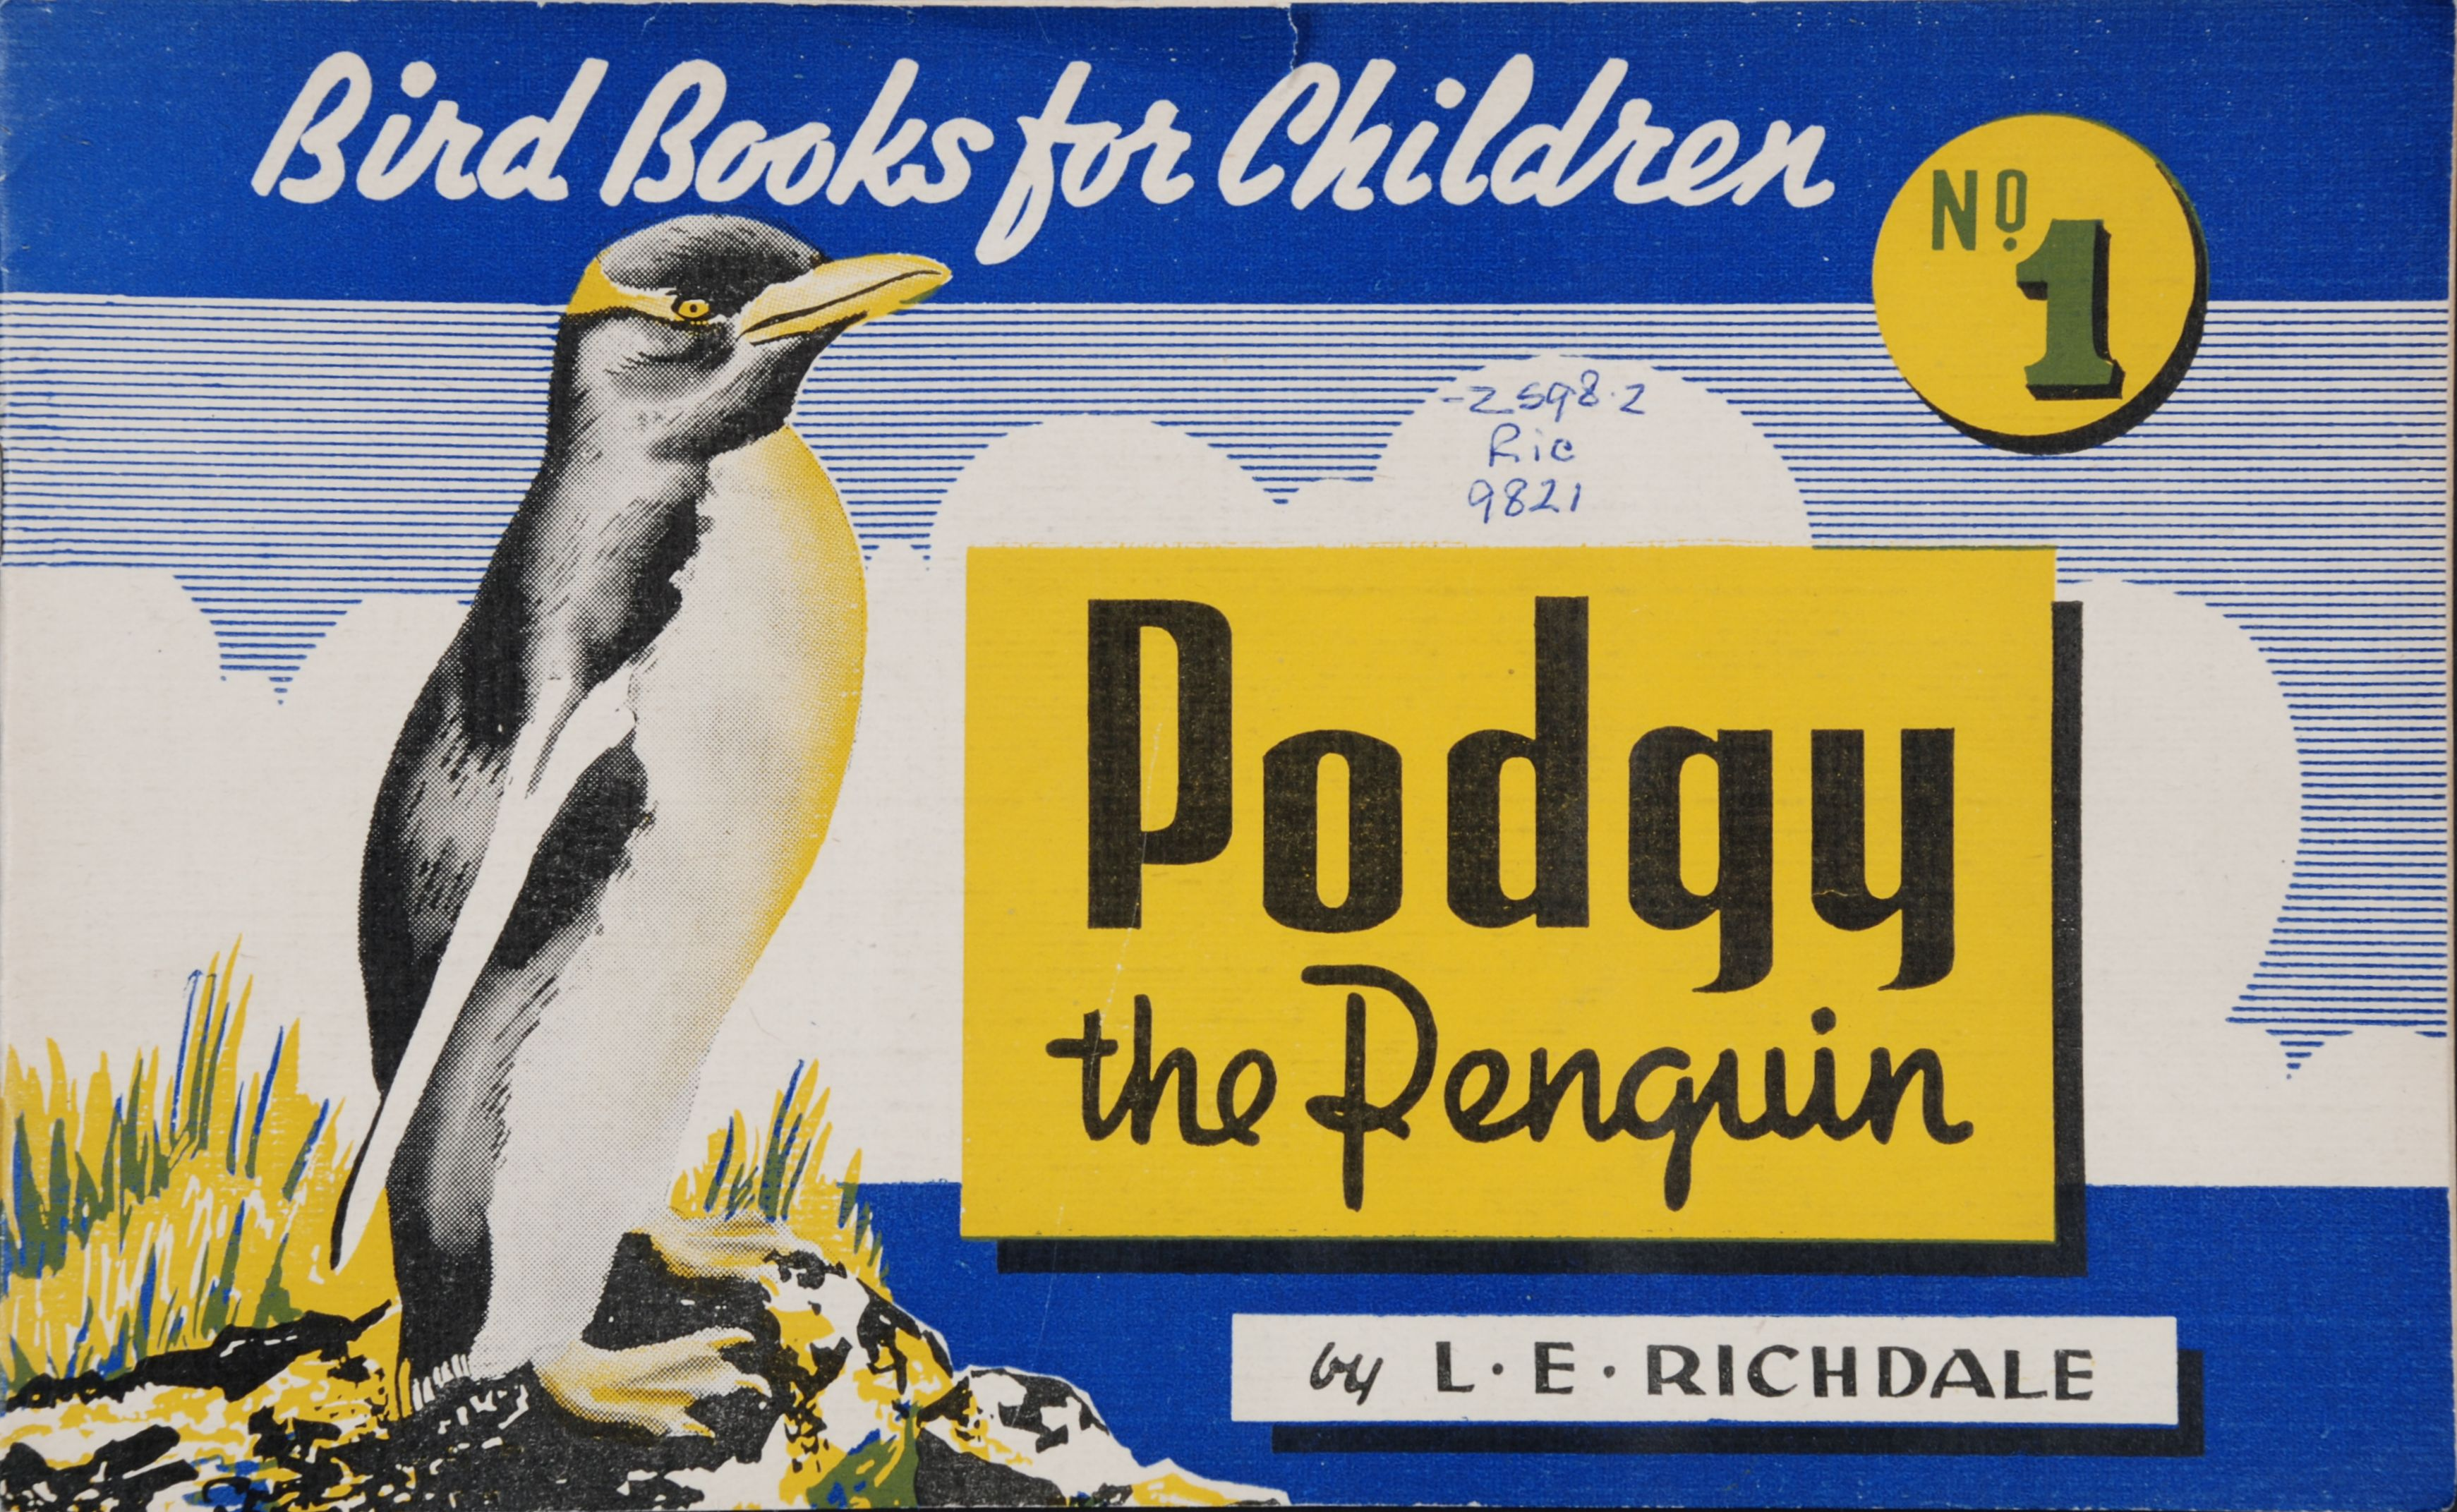 Lancelot Eric Richdale. Podgy the penguin. Dunedin, N.Z.: Otago Daily Times and Witness Newspapers Co., [1947].